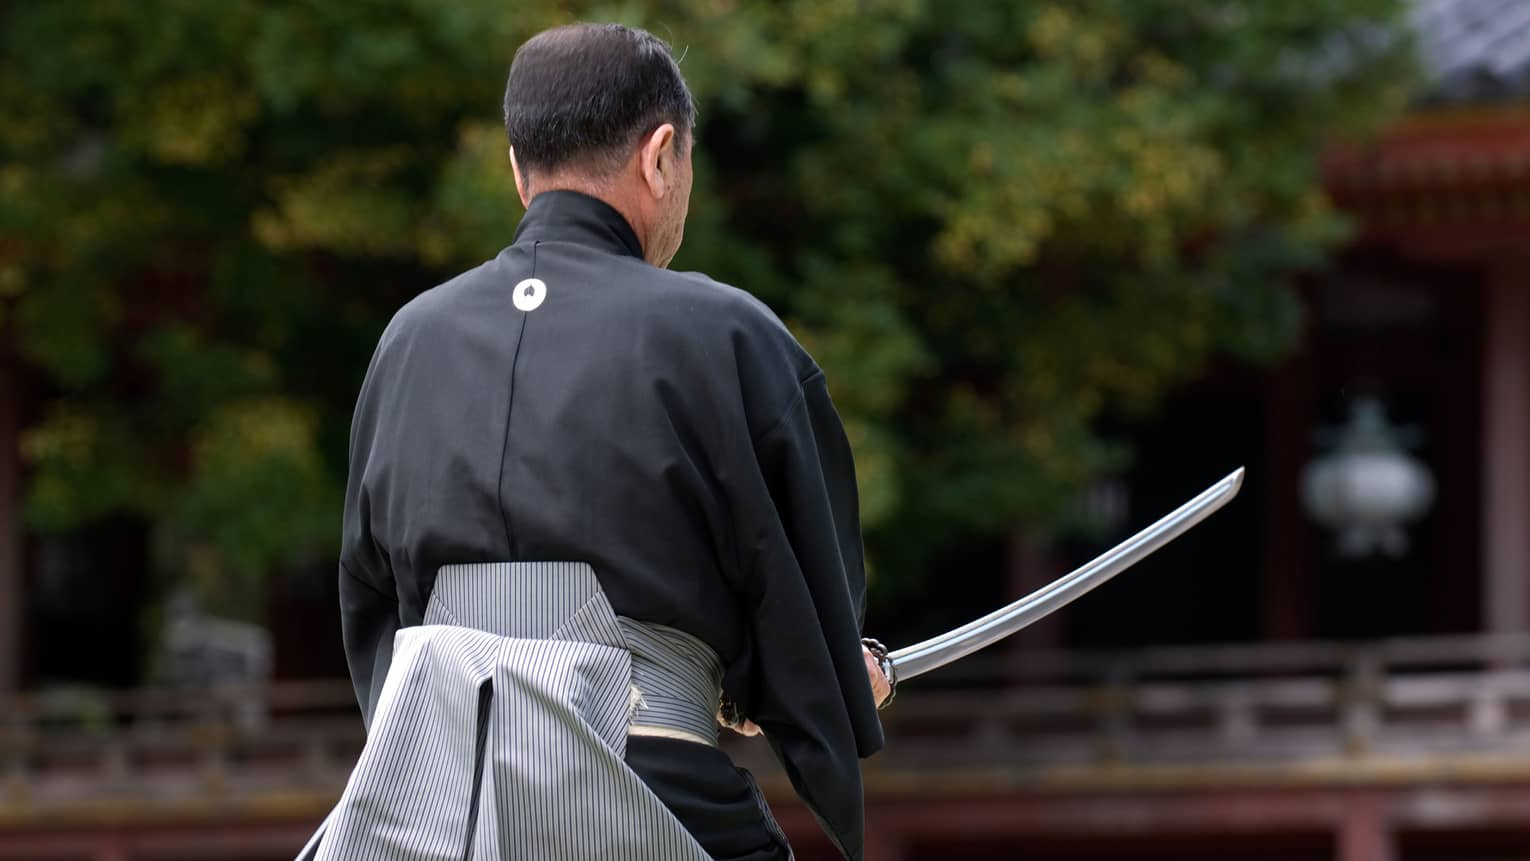 Back of man holding traditional sword in garden